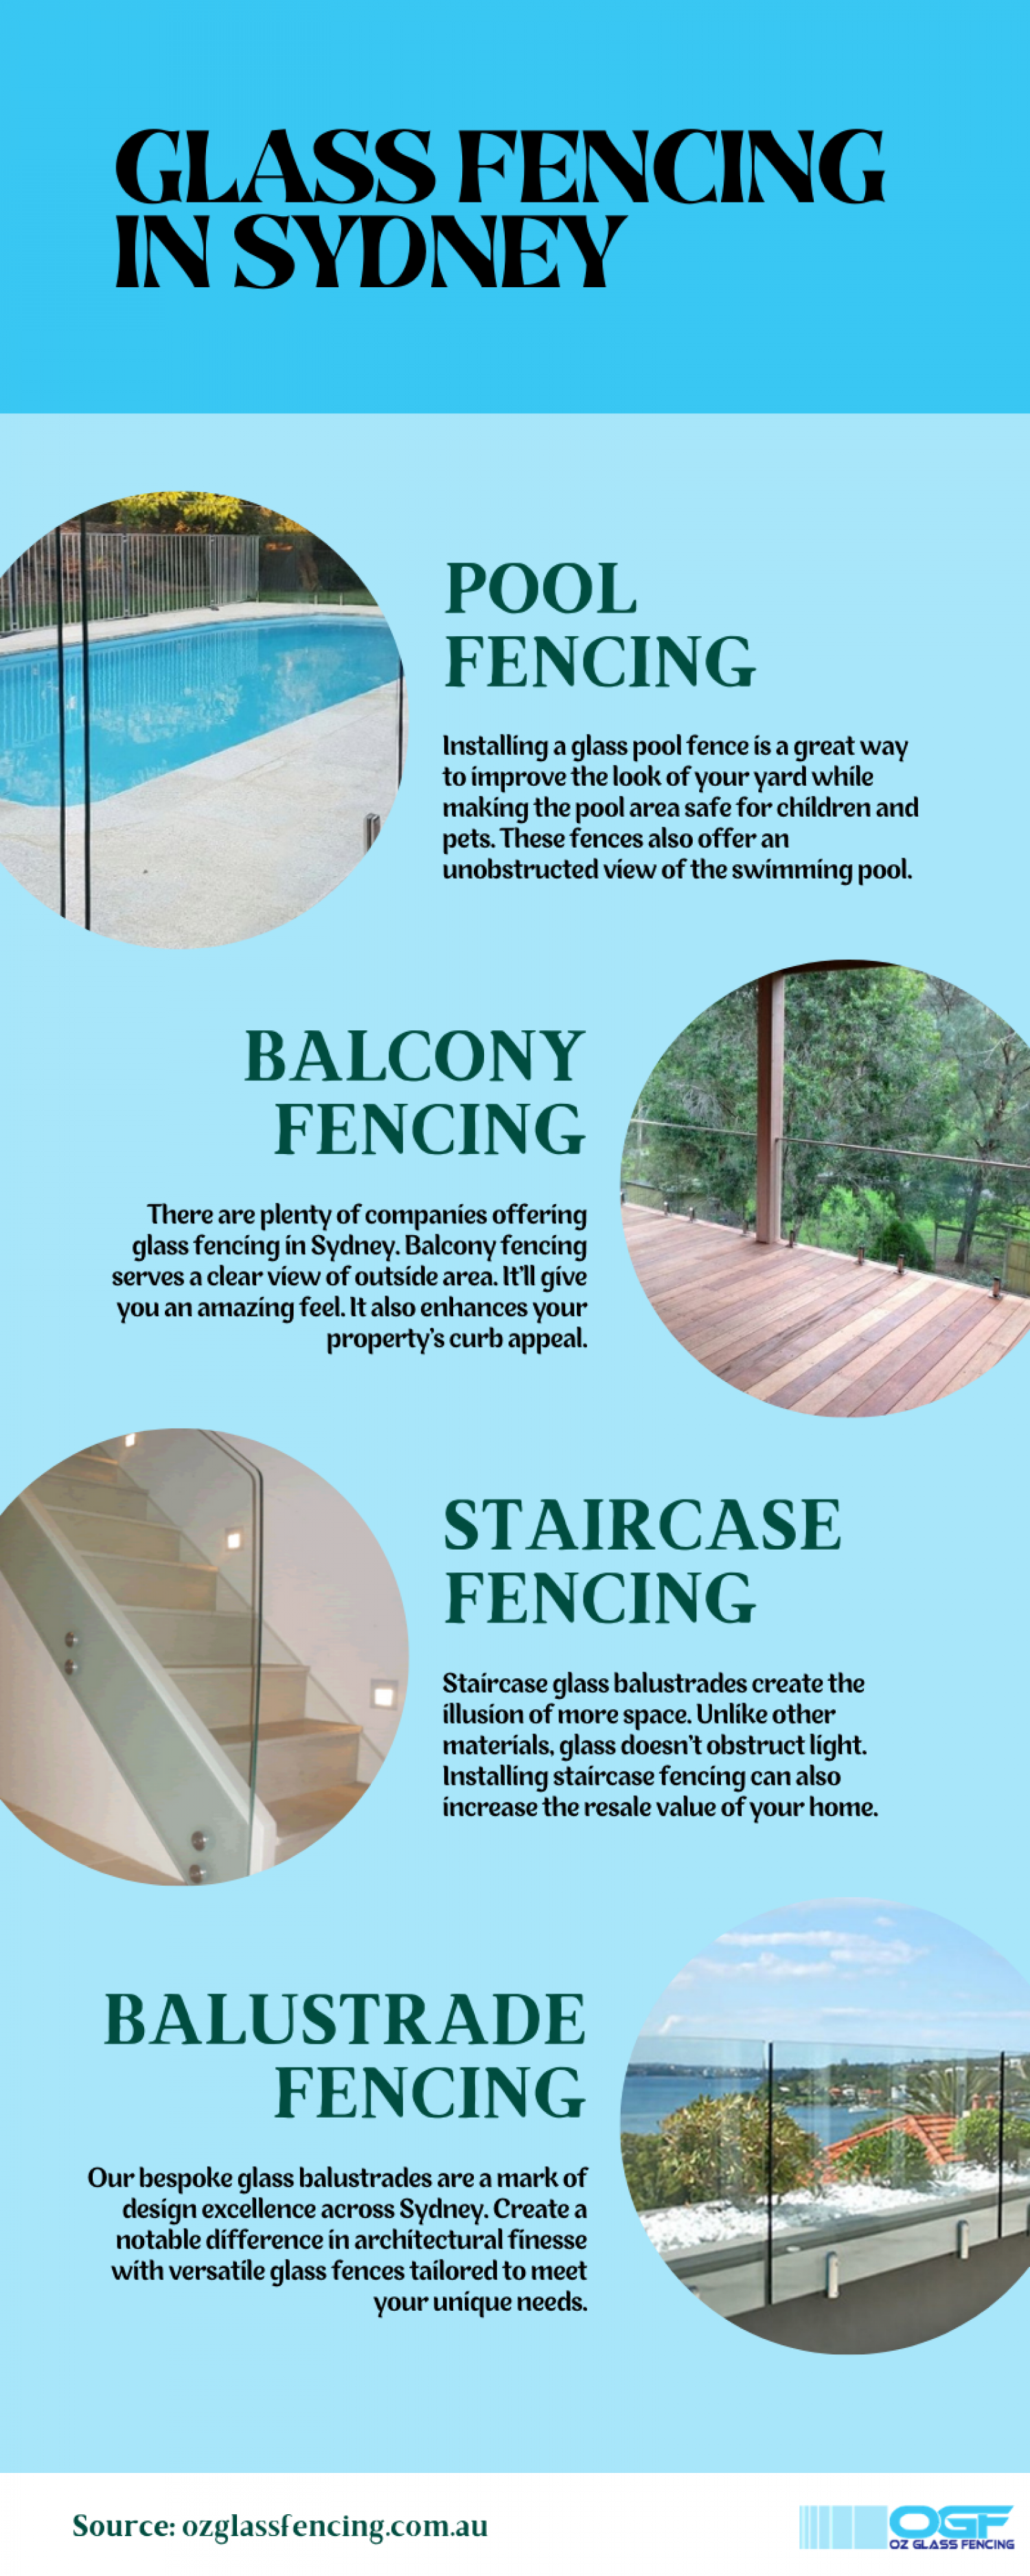 Glass Fencing Installation in Sydney Infographic